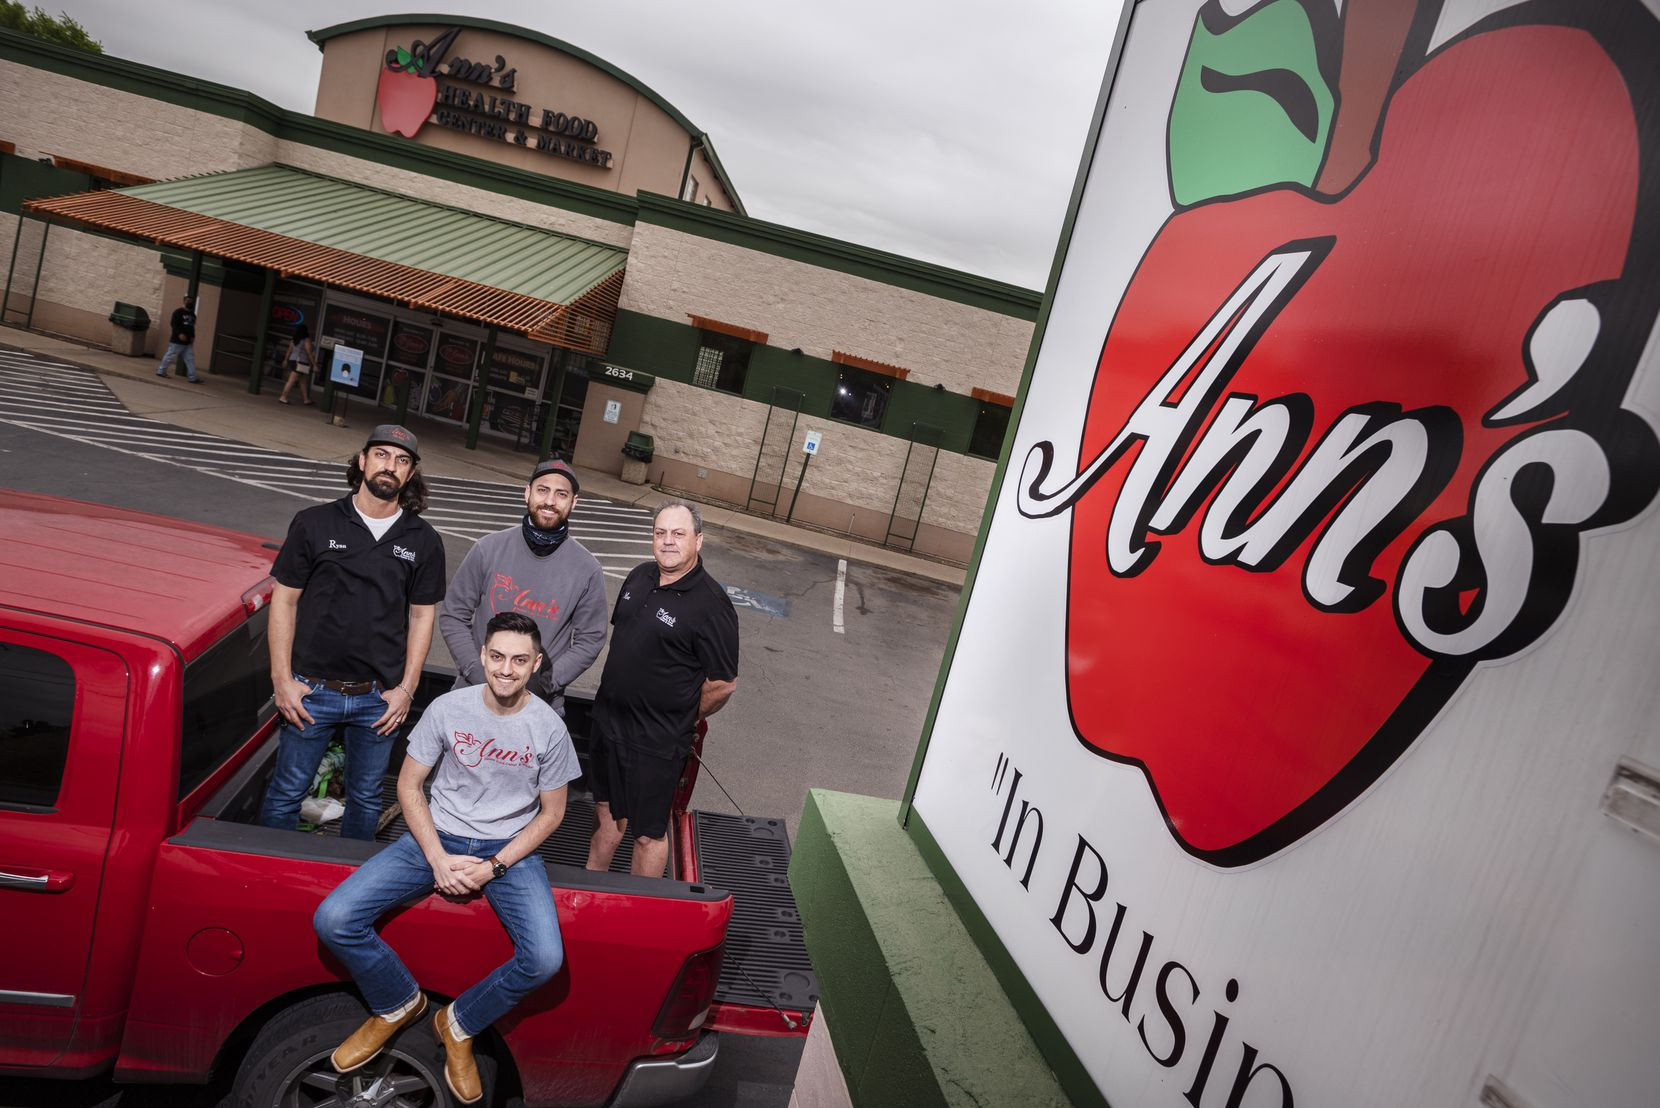 From left: The Munchrath family, brothers and general managers Ryan Munchrath, Landon Munchrath, sitting, Micah Munchrath, center, and their father, owner Matt Manchrath outside Ann's Health Food Store at South Zang Boulevard in Dallas.